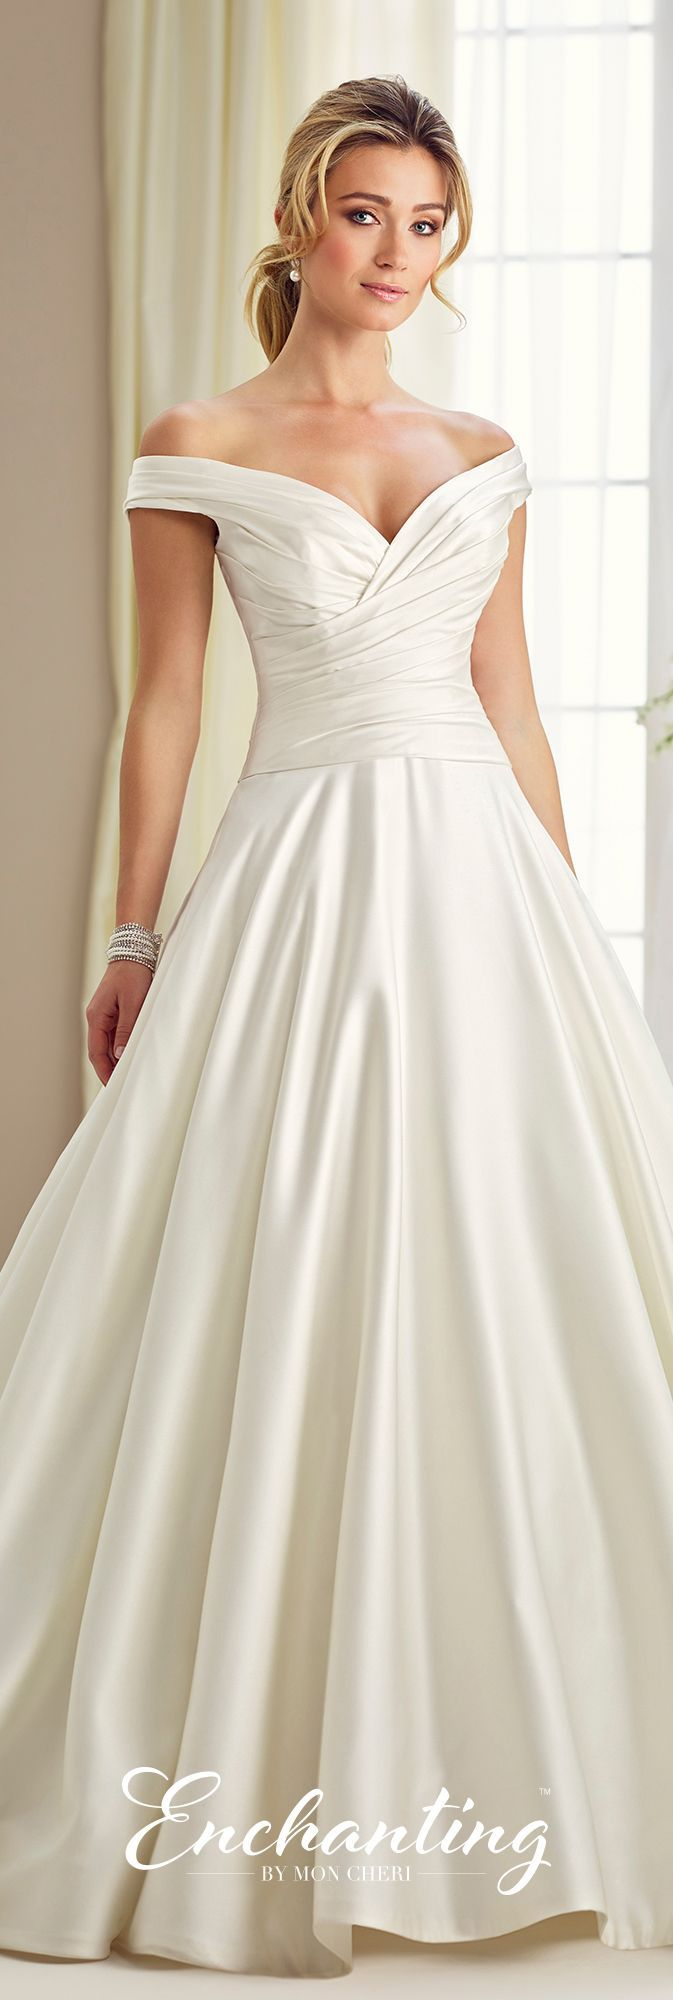 Enchanting by Mon Cheri Fall 2017 Collection - Style 217119 - off-the-shoulder soft satin ball gown wedding dress